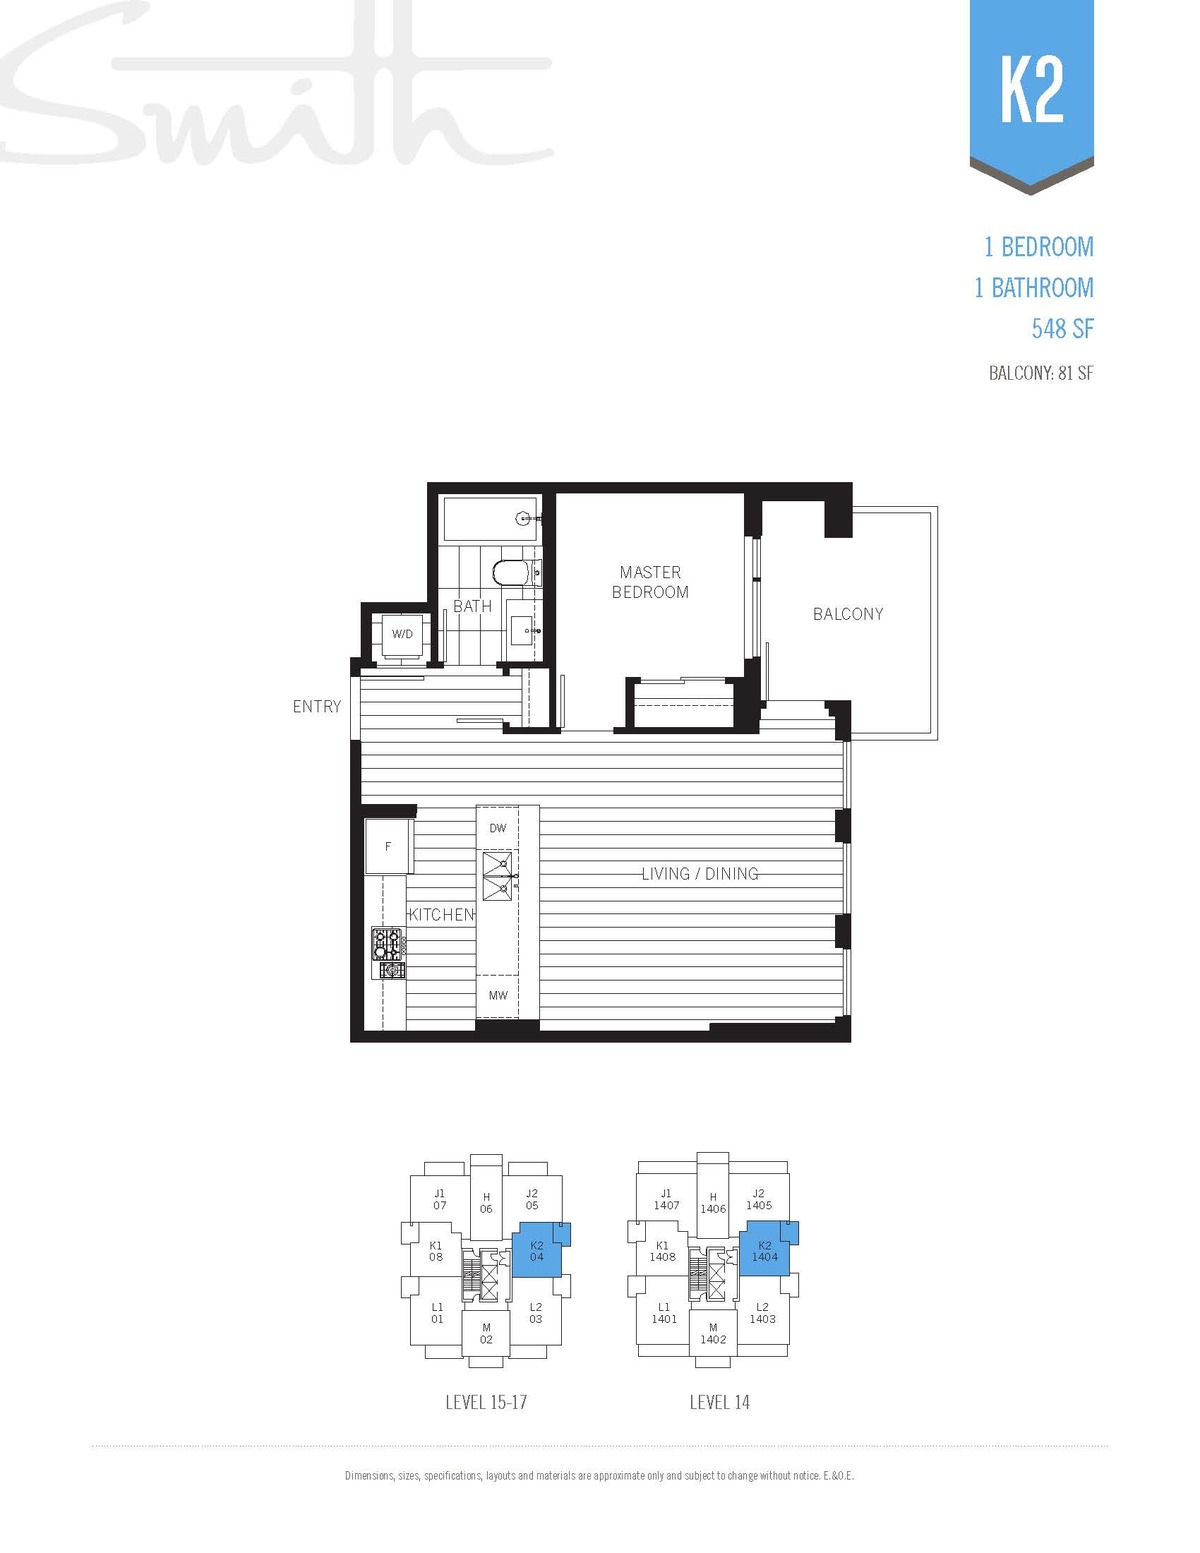 Smith Floorplan K2